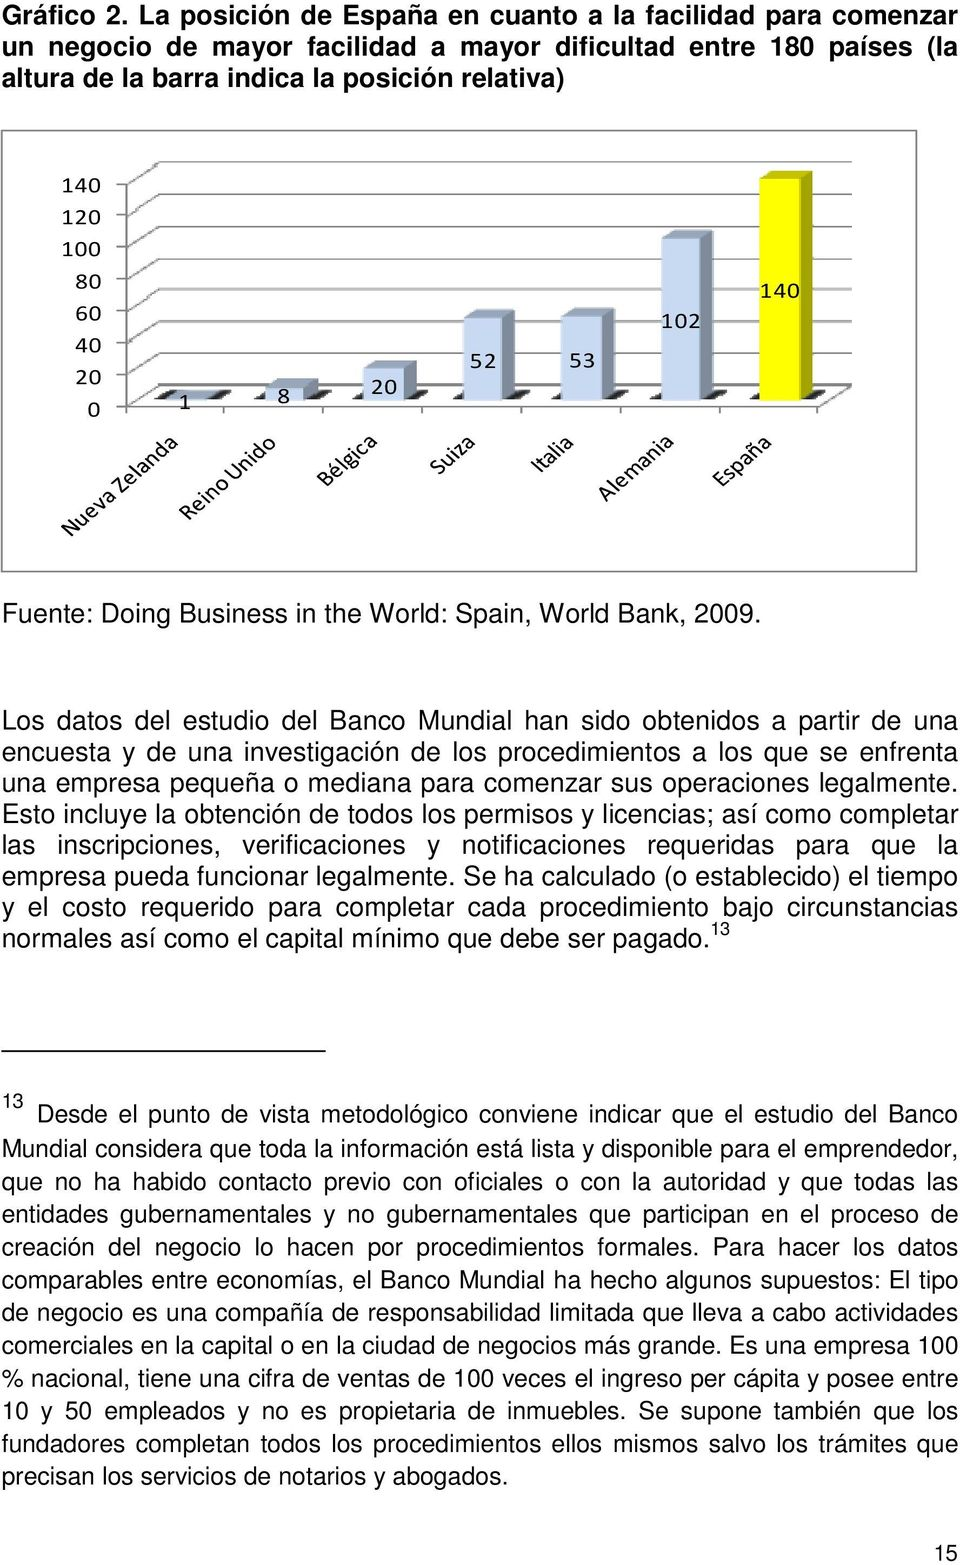 20 0 1 8 20 52 53 102 140 Fuente: Doing Business in the World: Spain, World Bank, 2009.